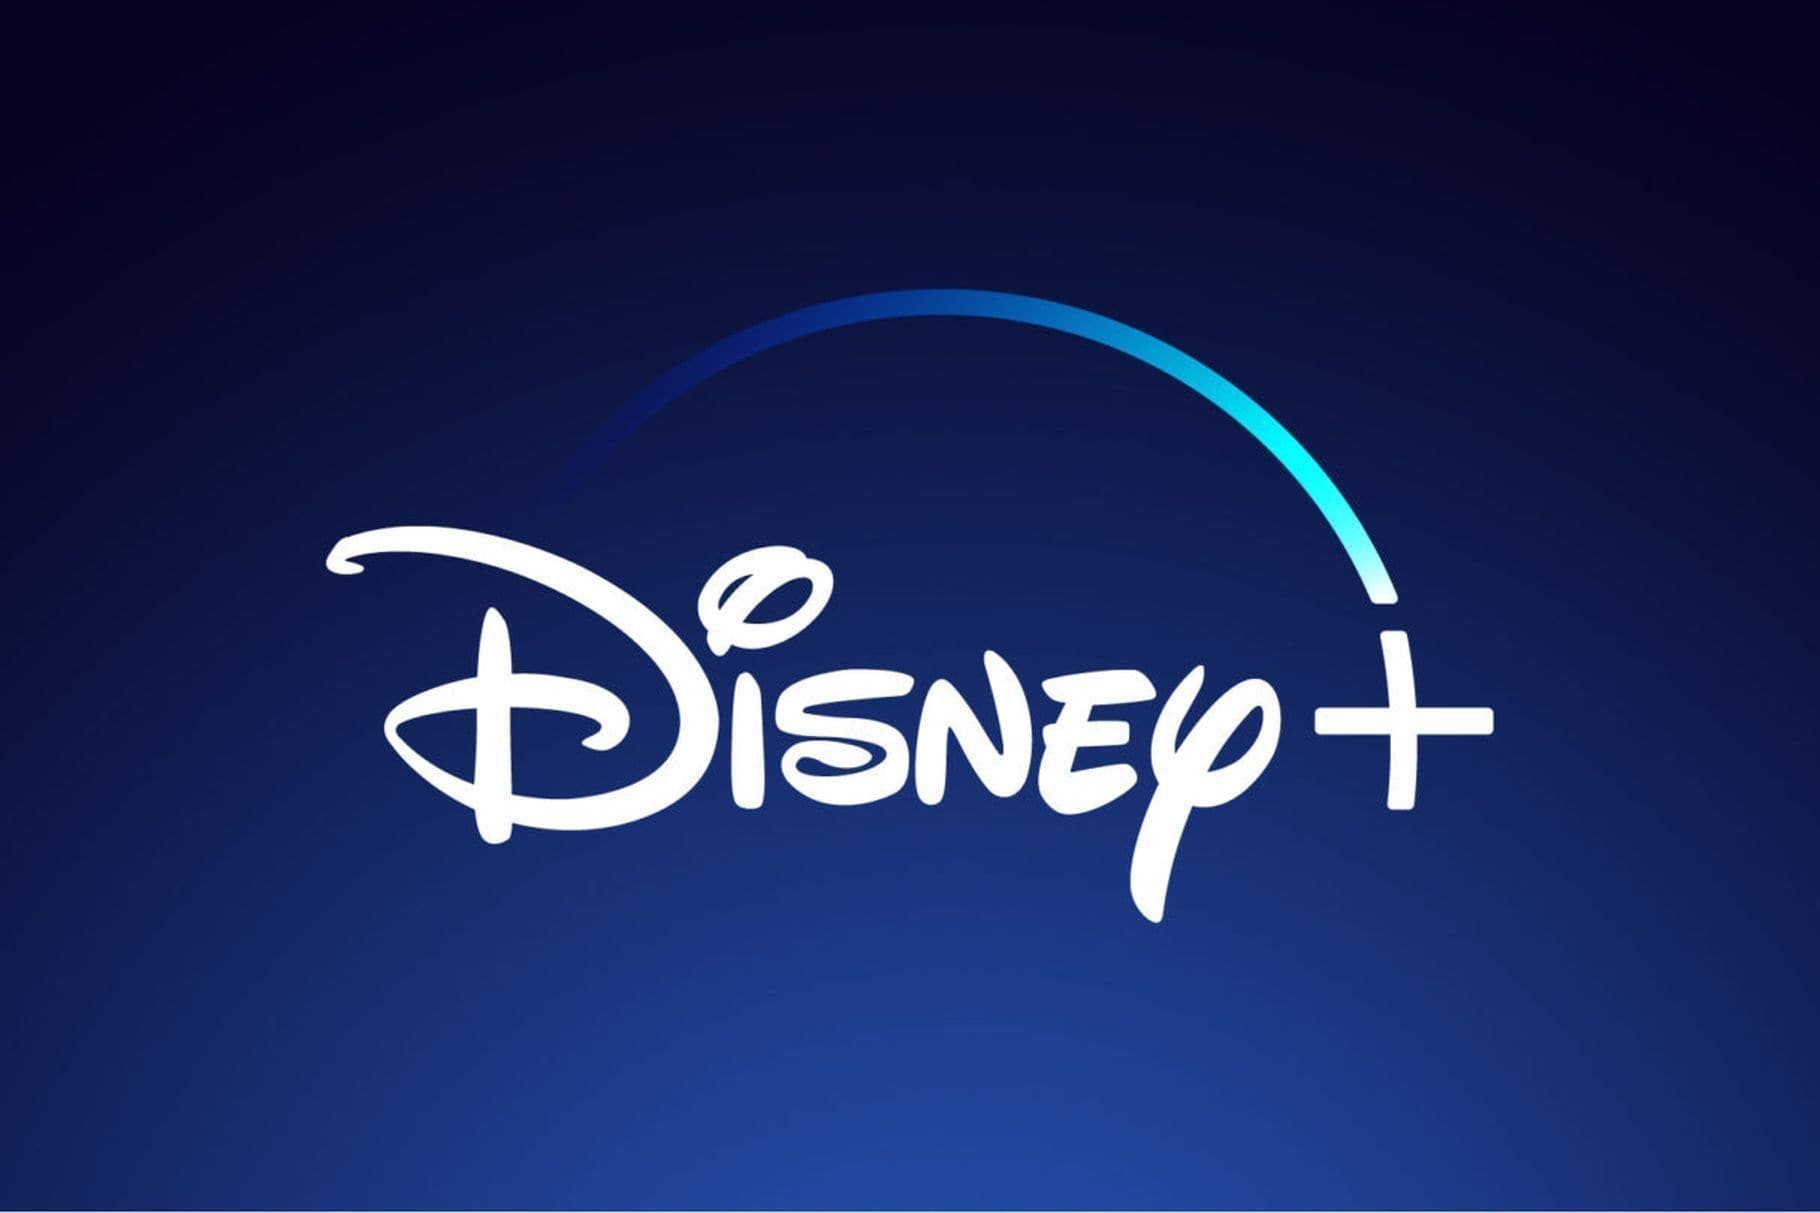 Disney+ Comes to LG Smart TVs (1)